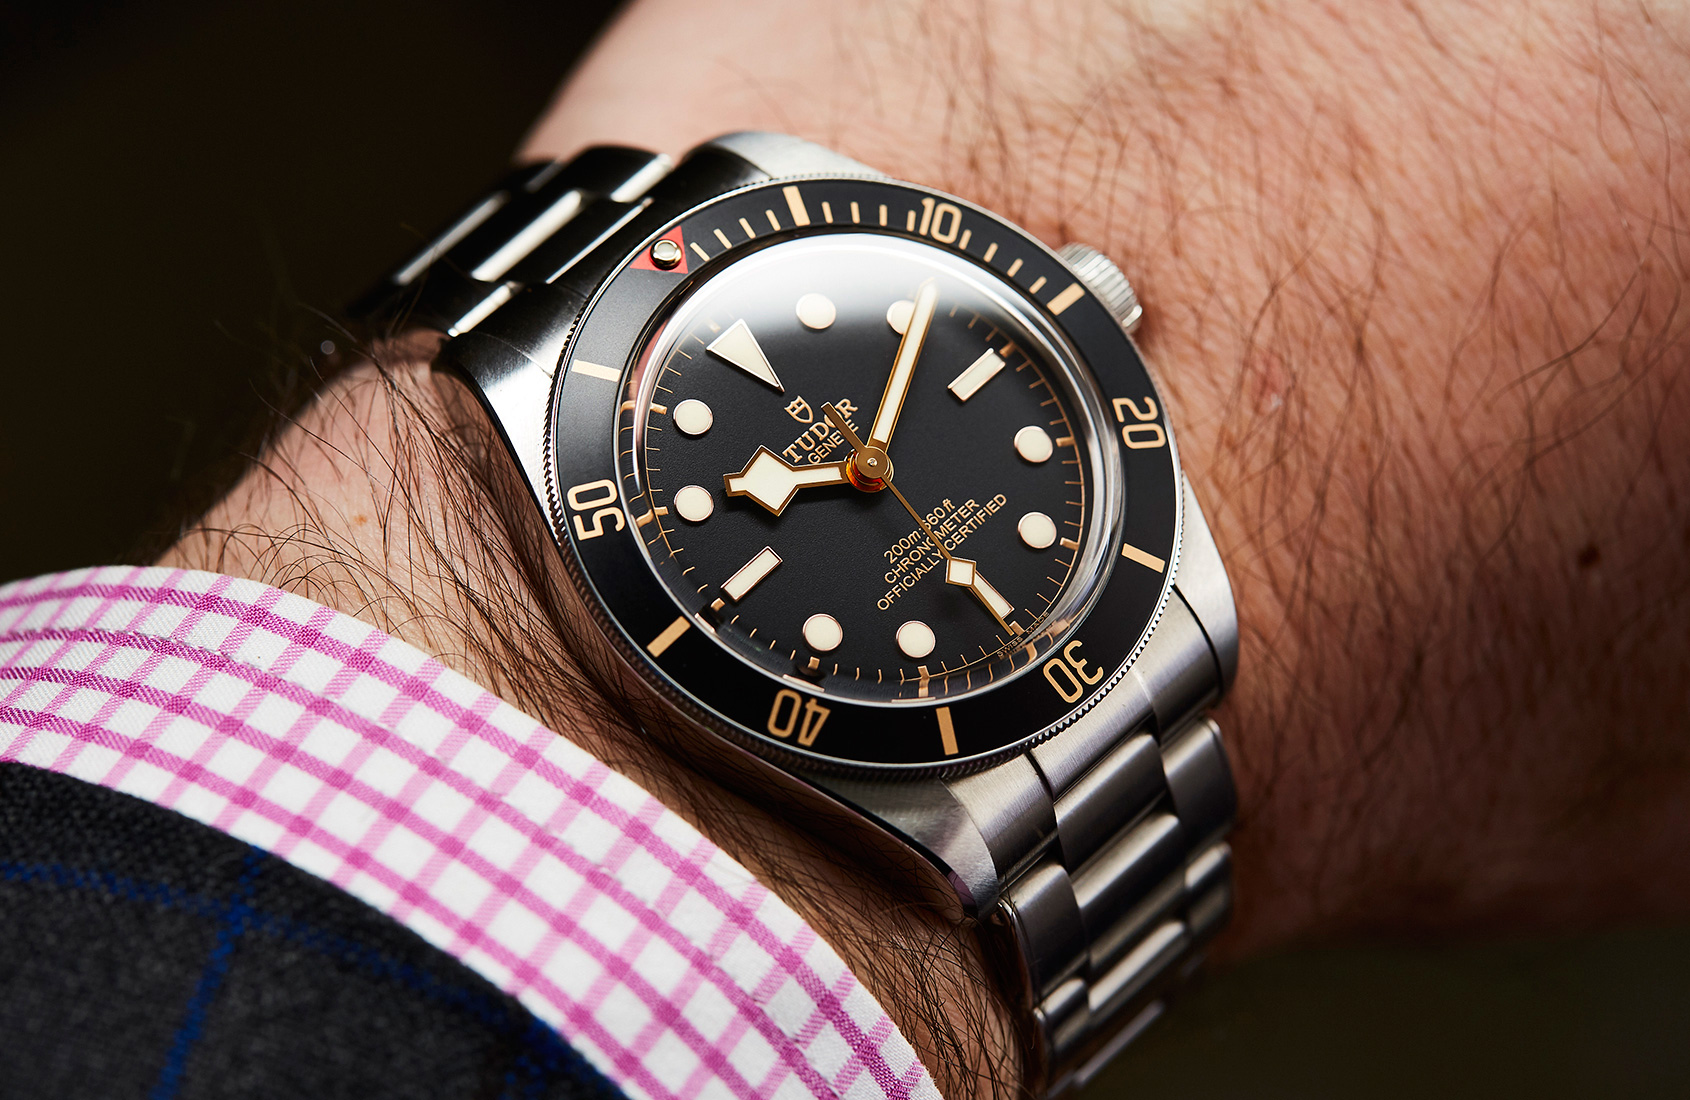 LIST: 5 things Cam wants (and hopes) to see at Baselworld 2019